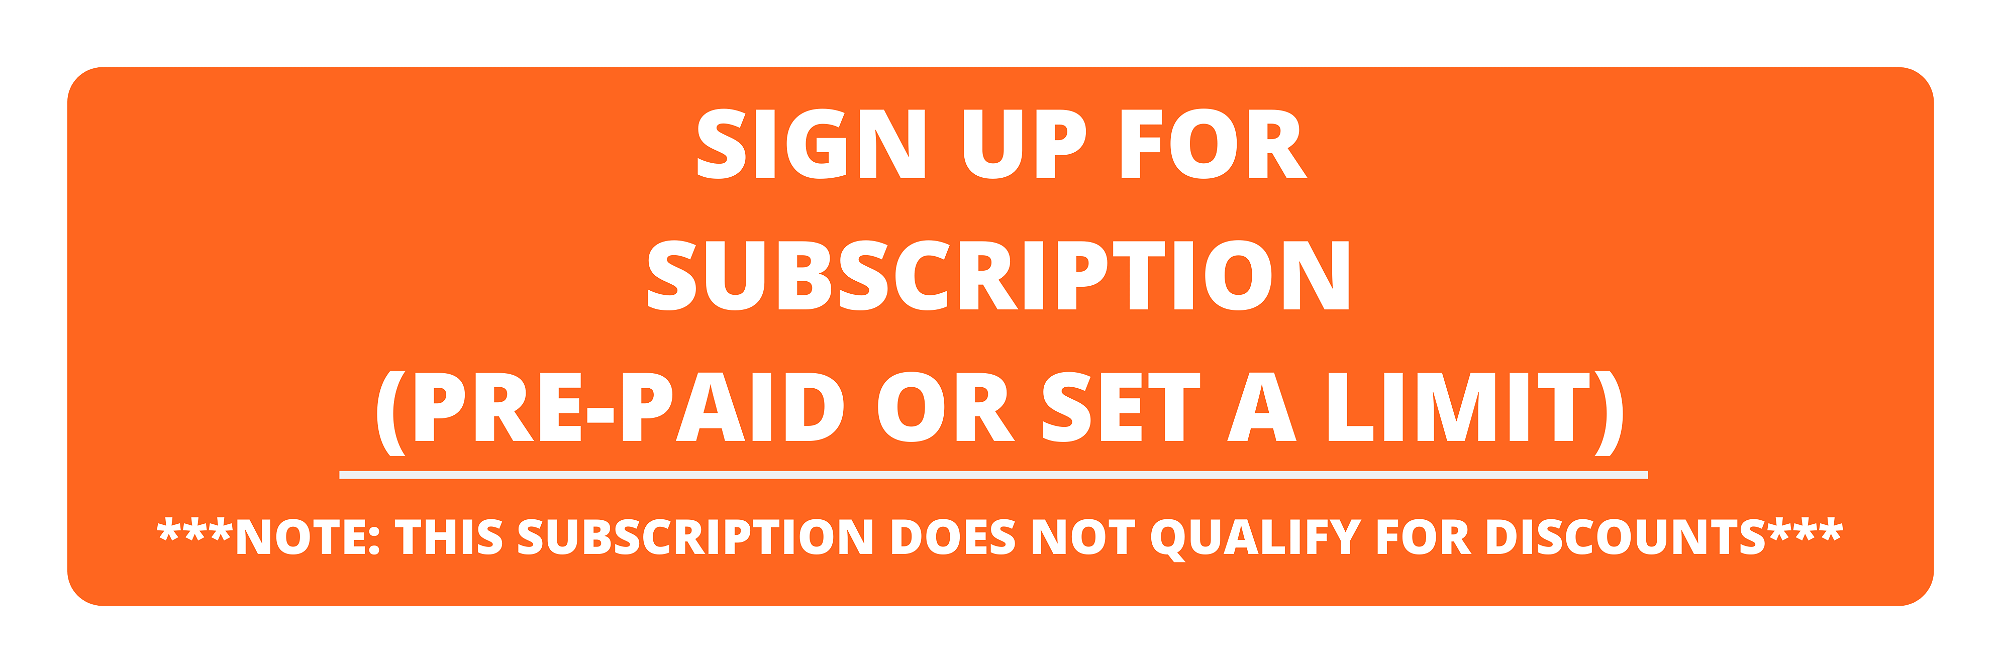 sign up for subscription (pre-paid or set a limit) * note: this subscription does not qualify for discounts *